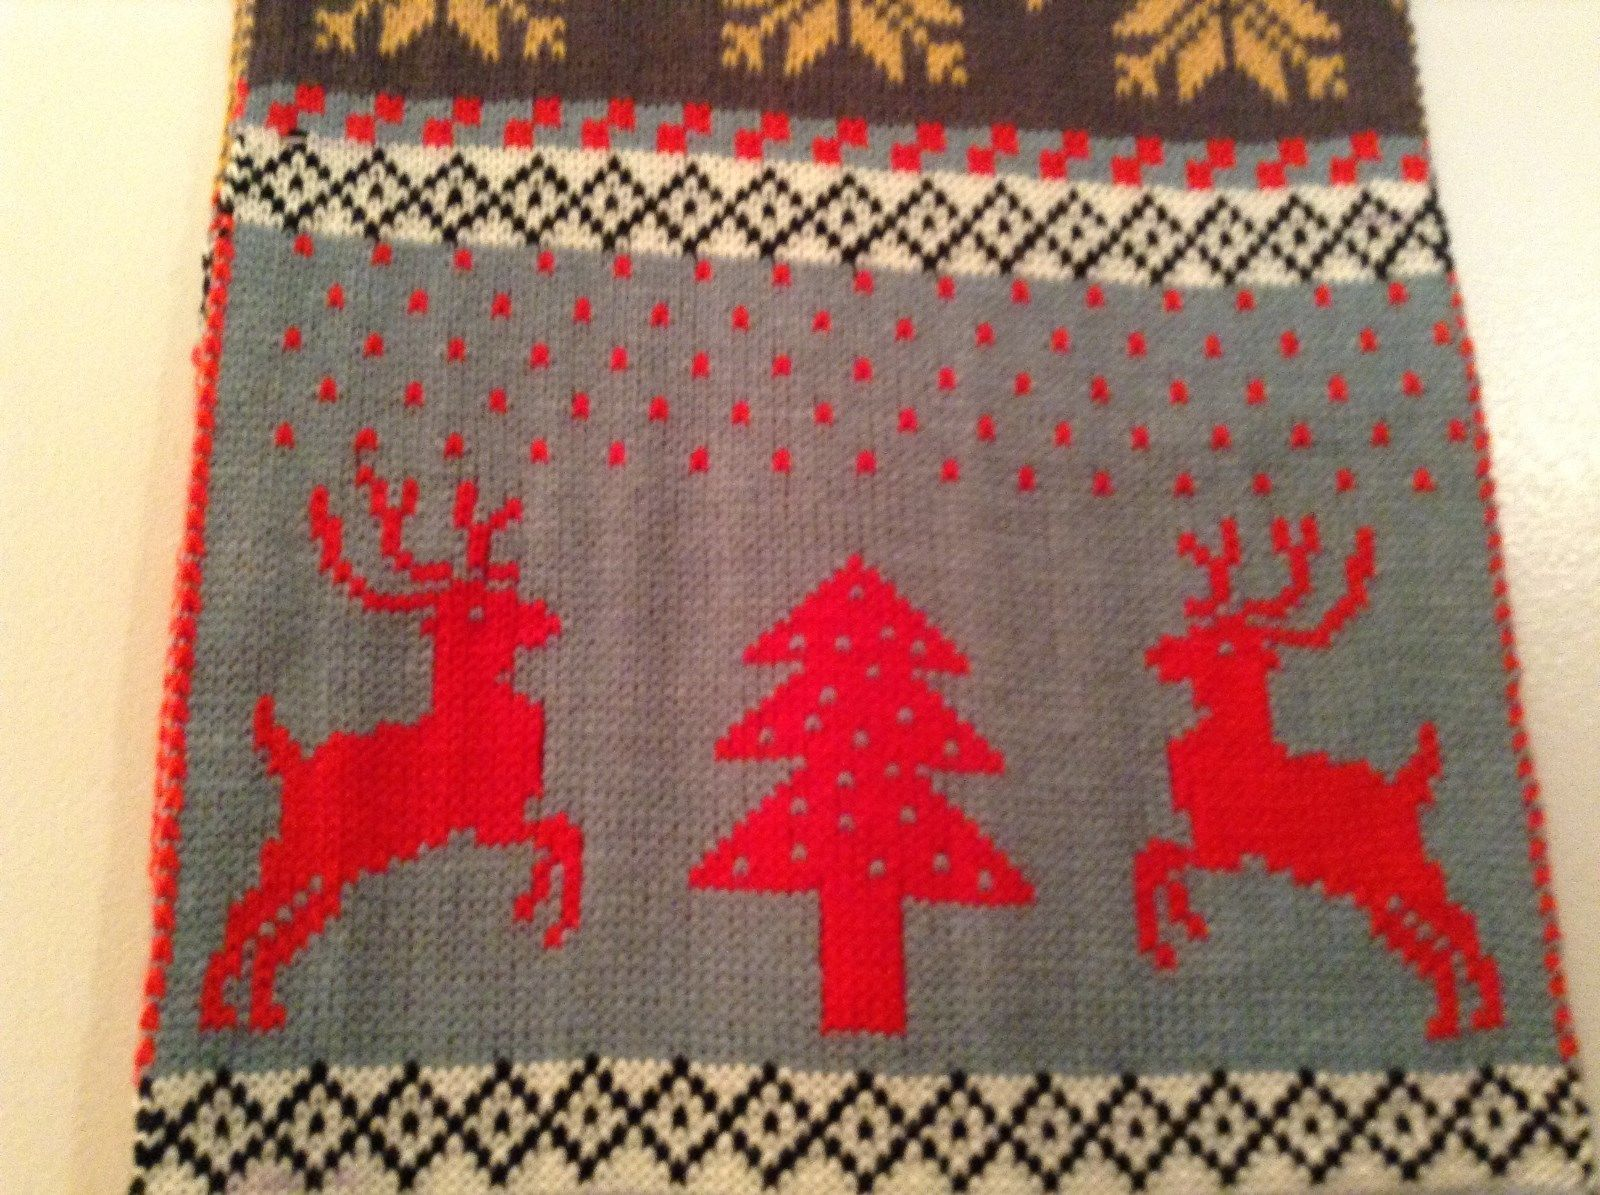 Red Gray Brown Yellow Striped Deer reindeer Tree Knit Scarf w Pom Poms Winter